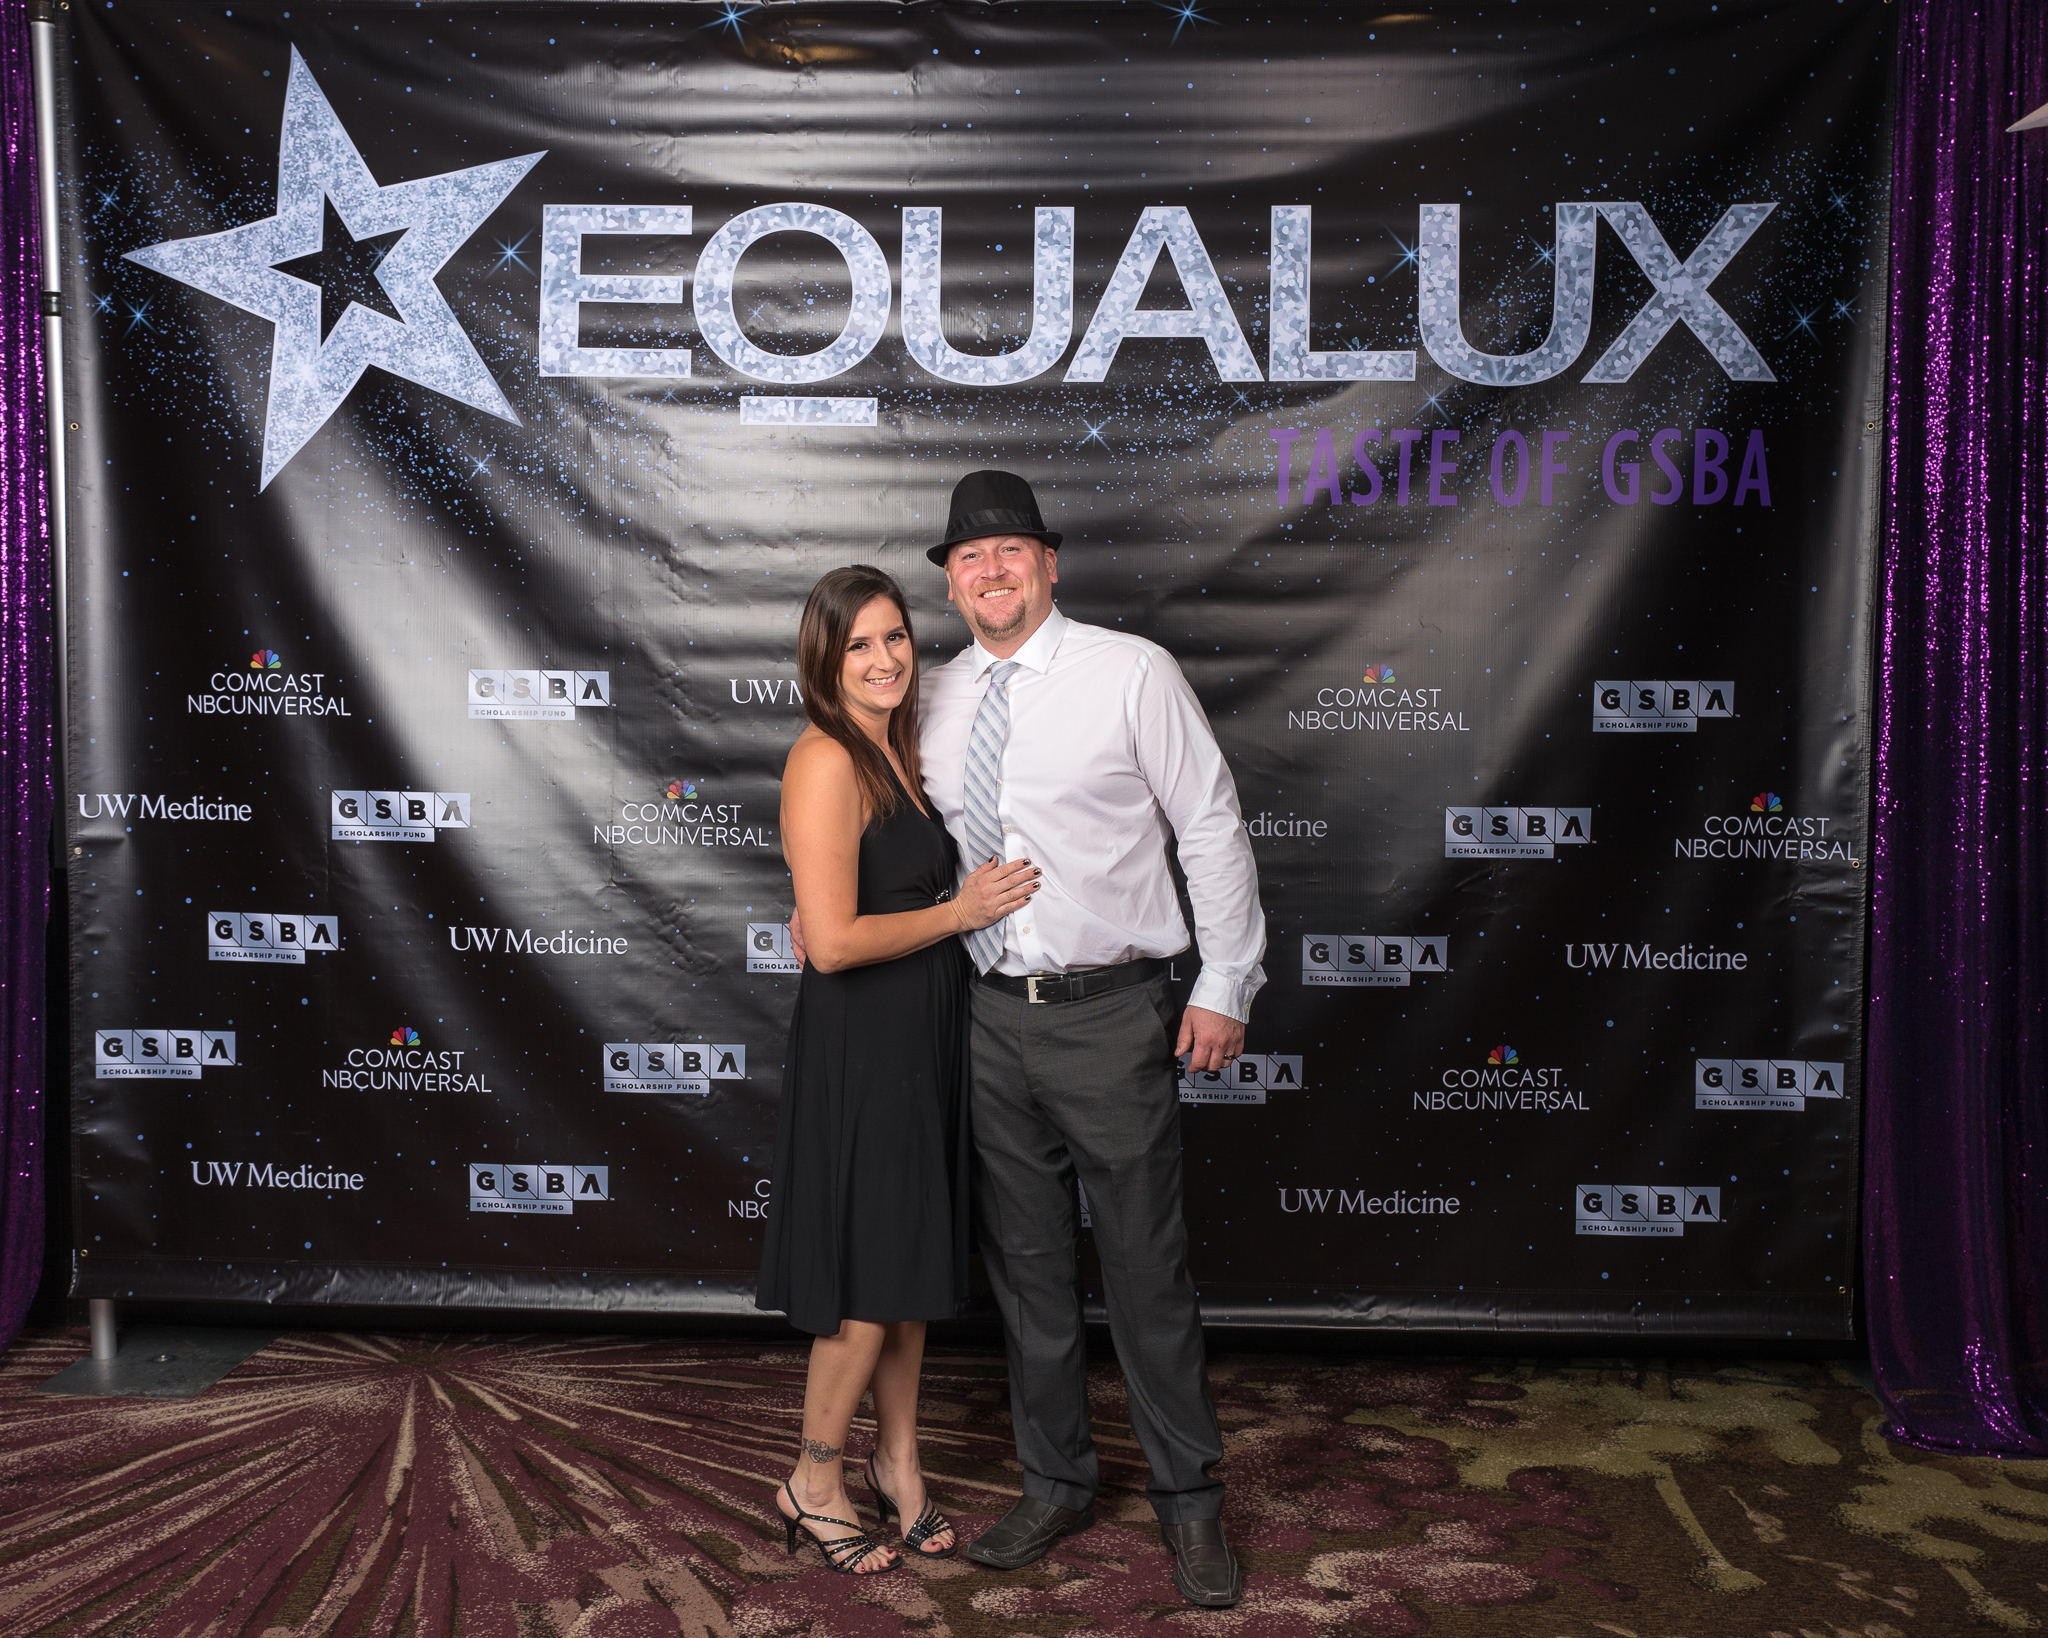 111718_GSBA EQUALUX at The Westin Seattle (Credit- Nate Gowdy)-53.jpg